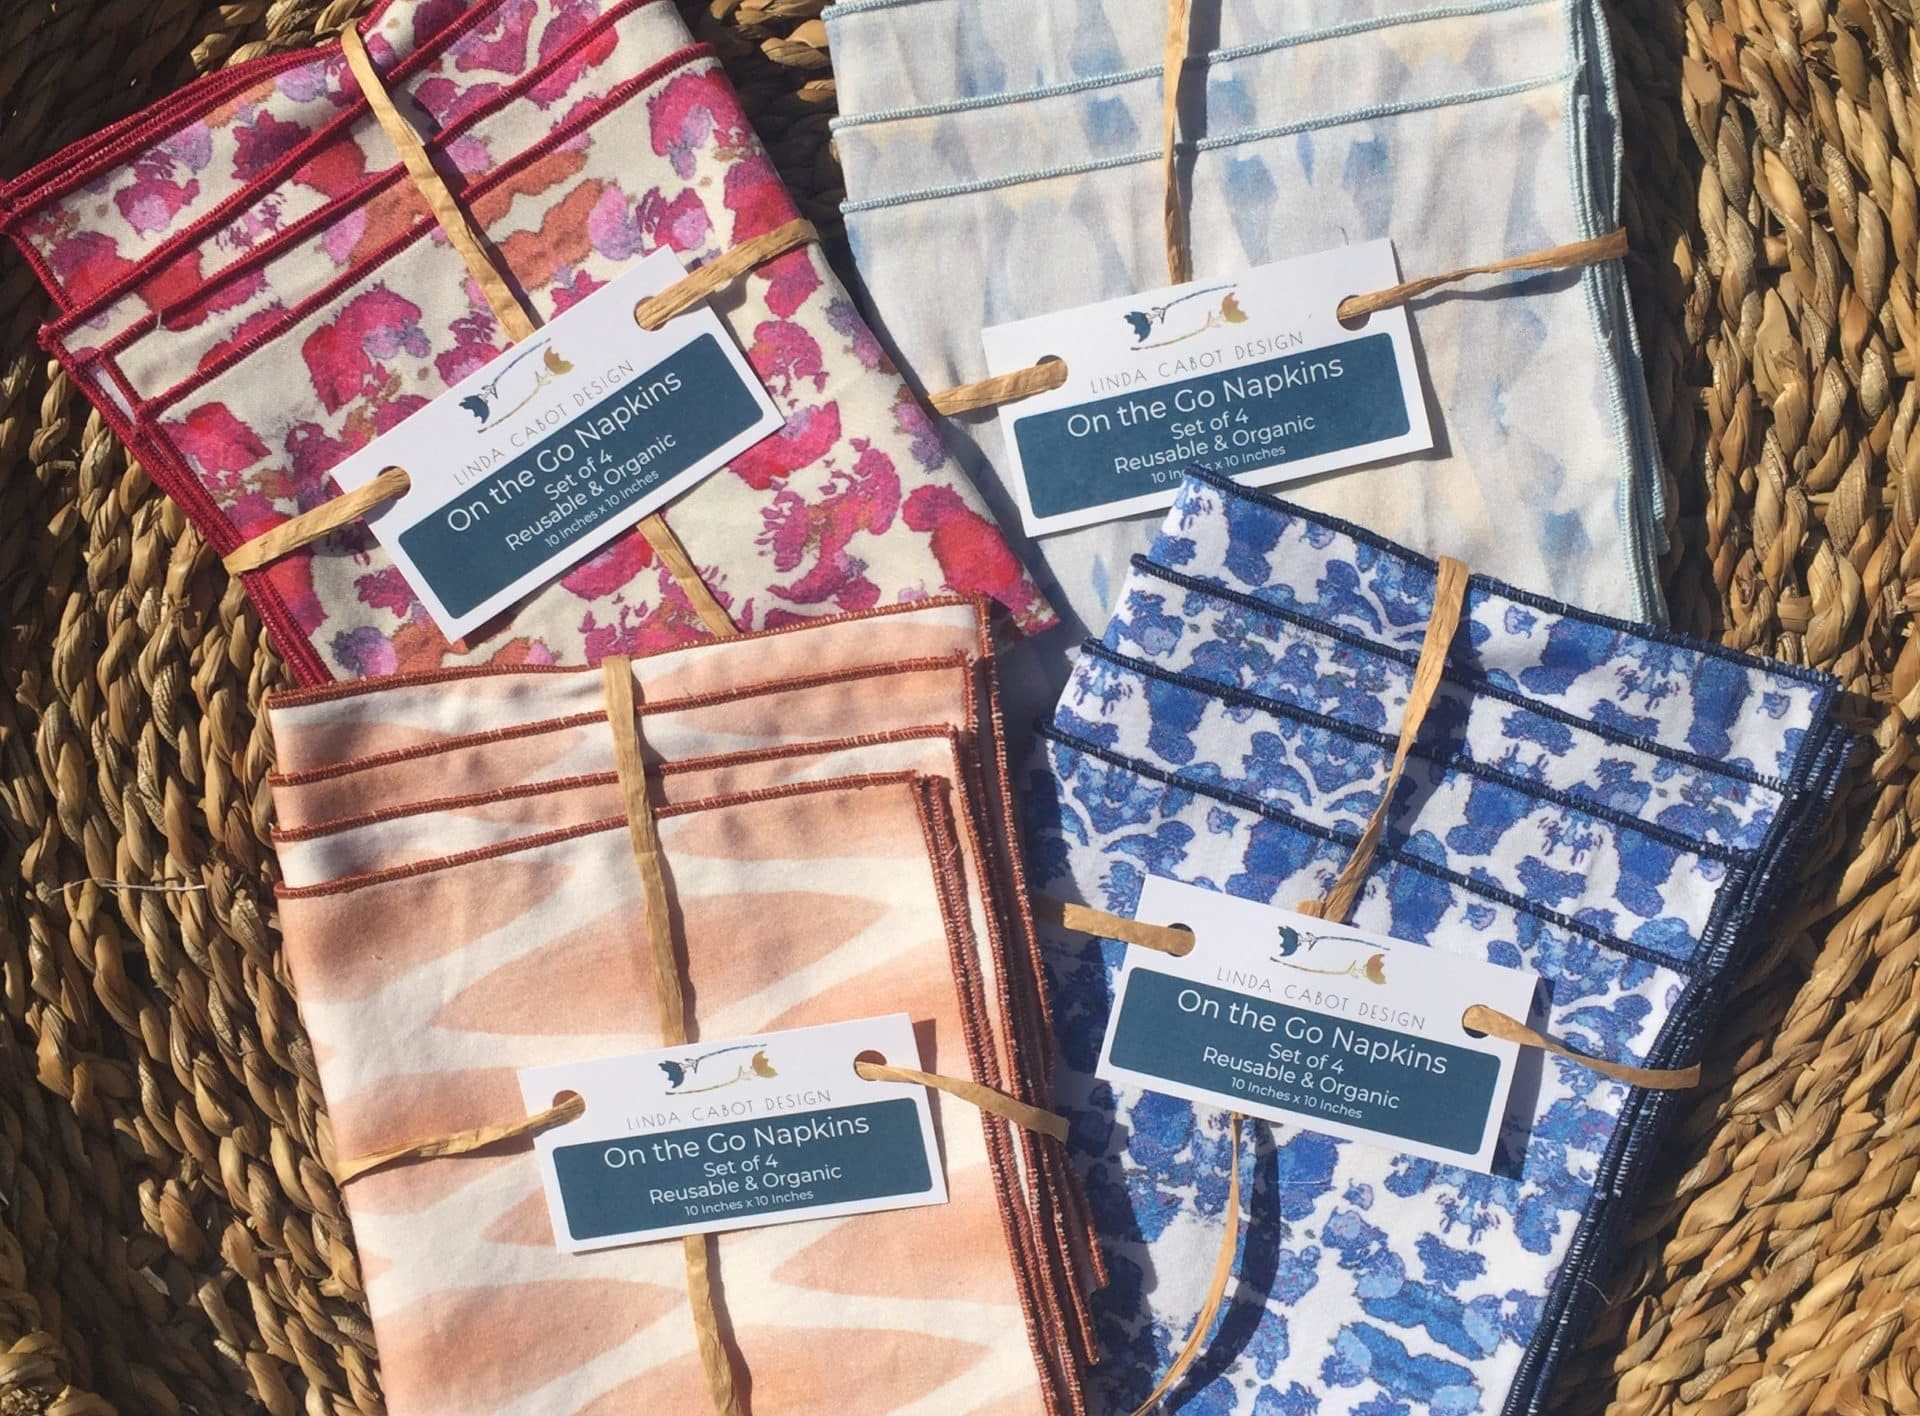 Organic cotton On the Go Napkins in a variety of colors